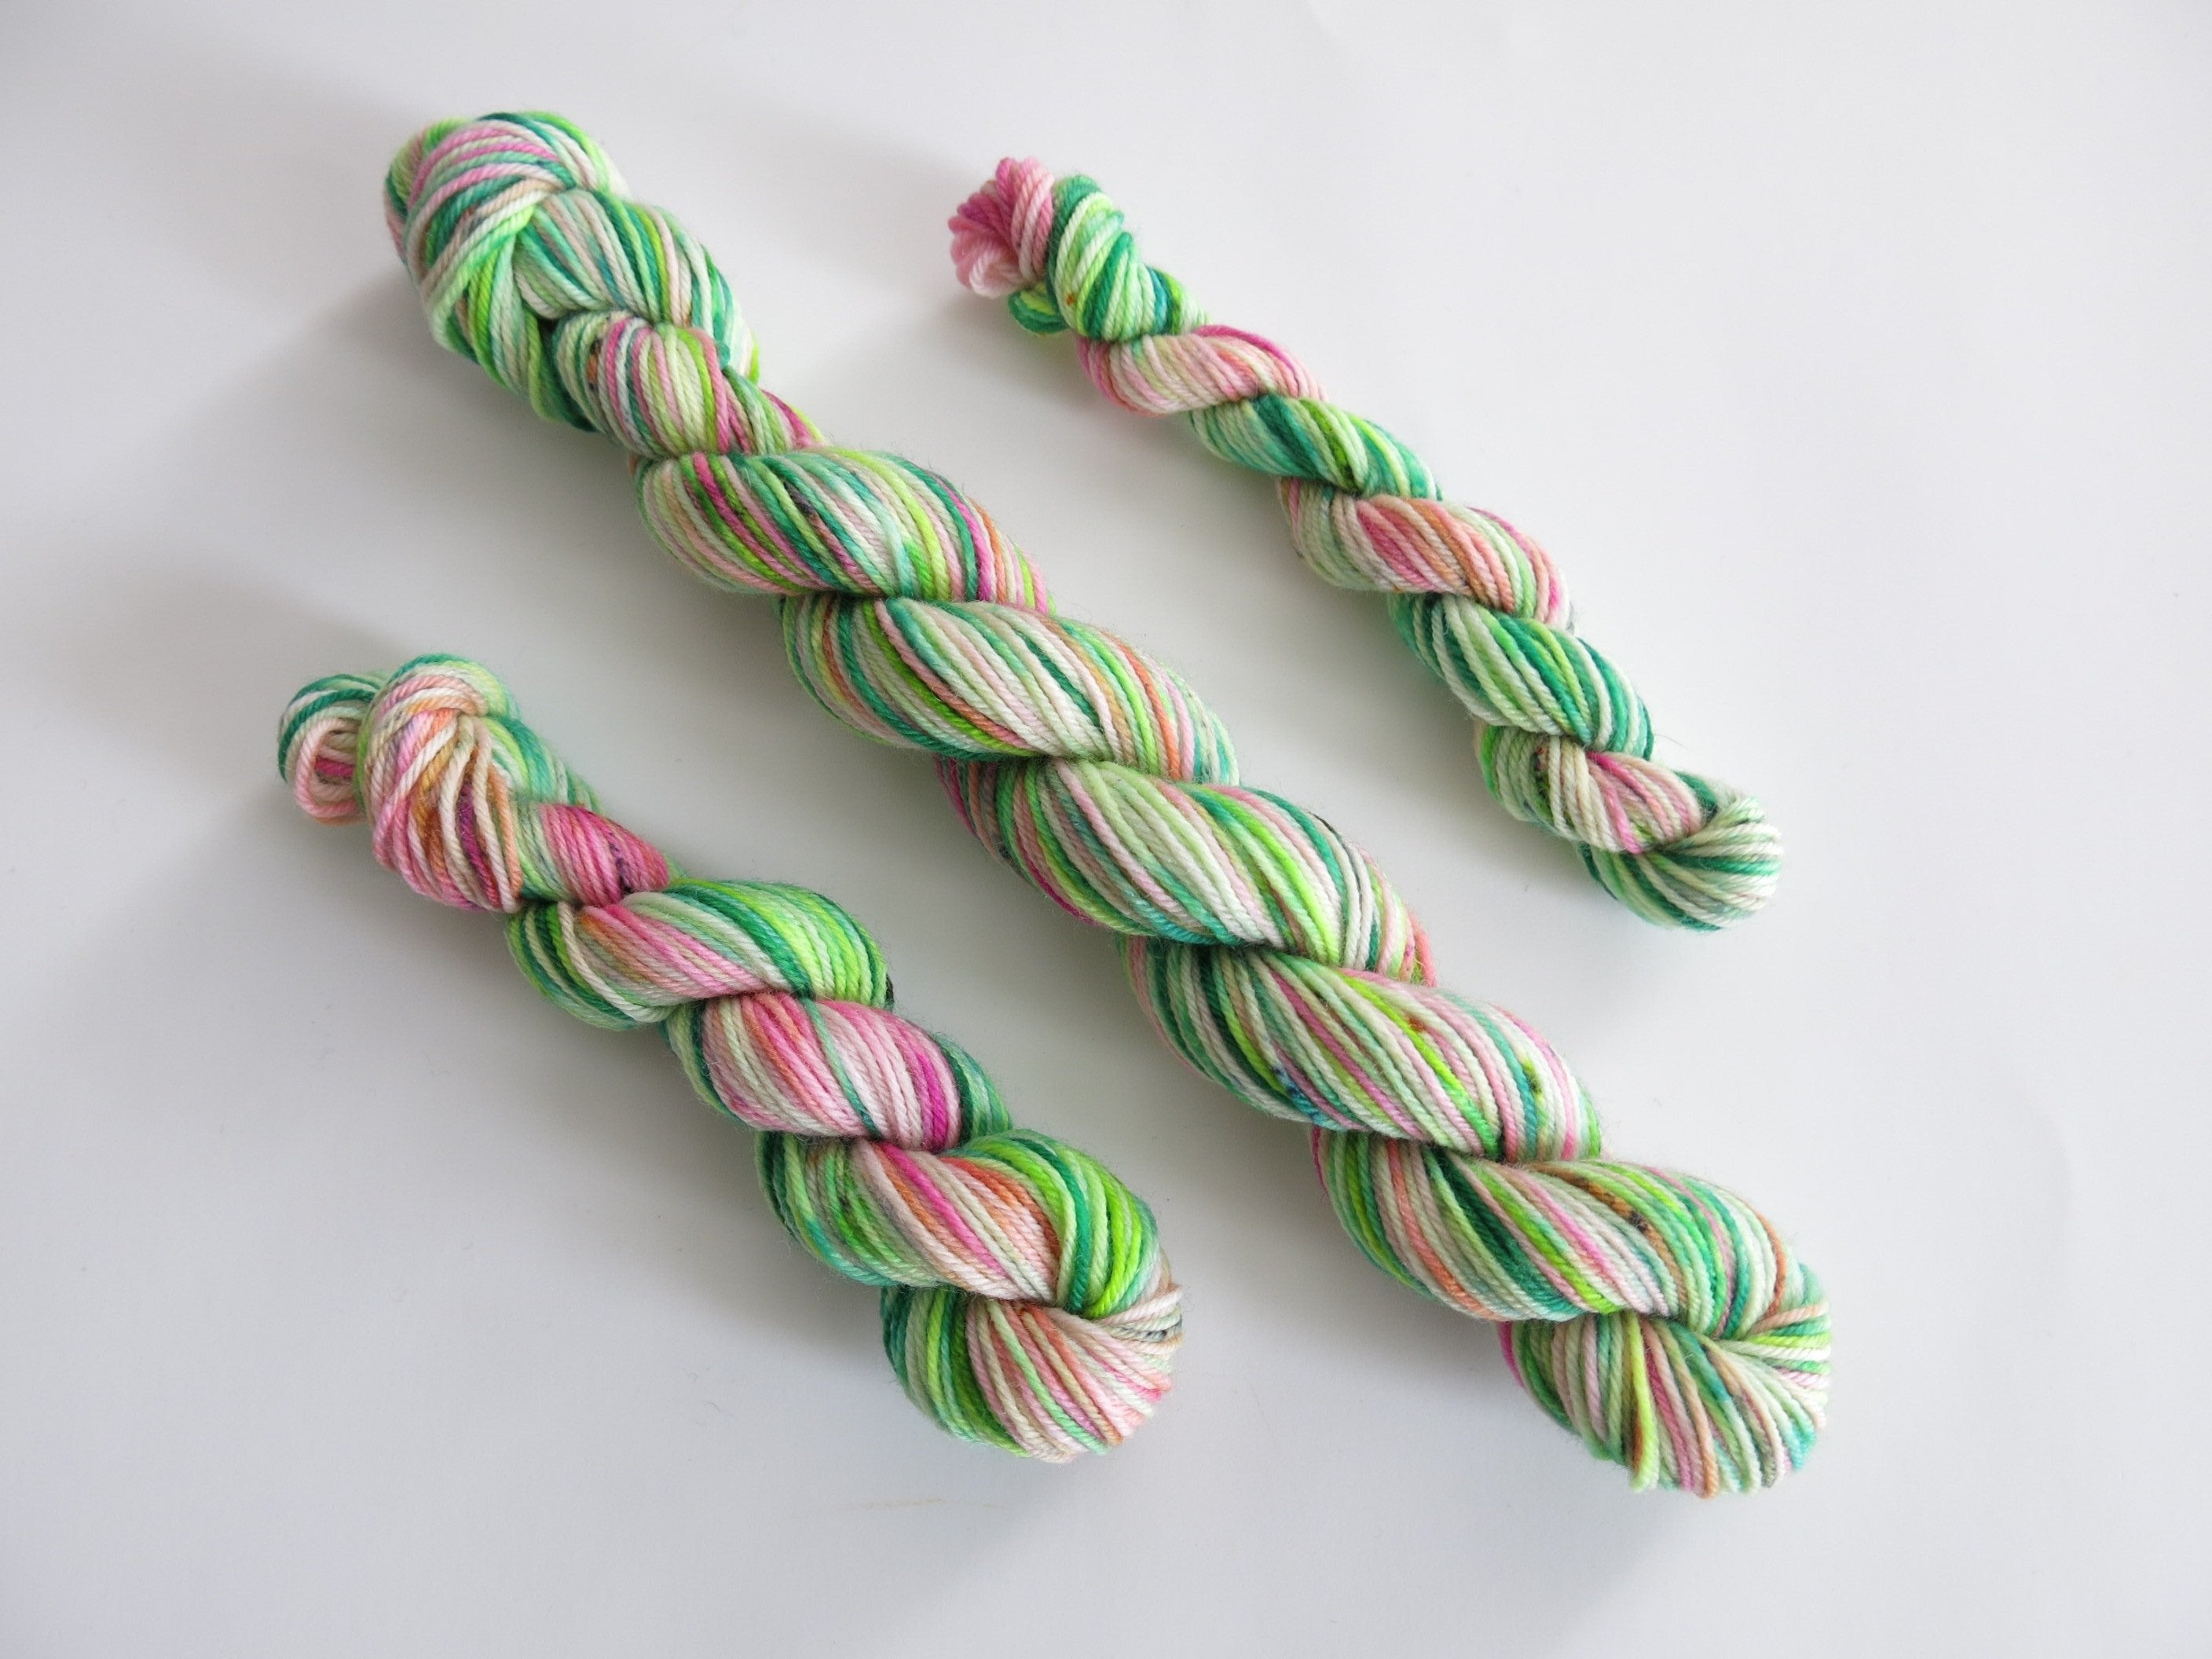 indie dyed uv reactive pink and green sock yarn